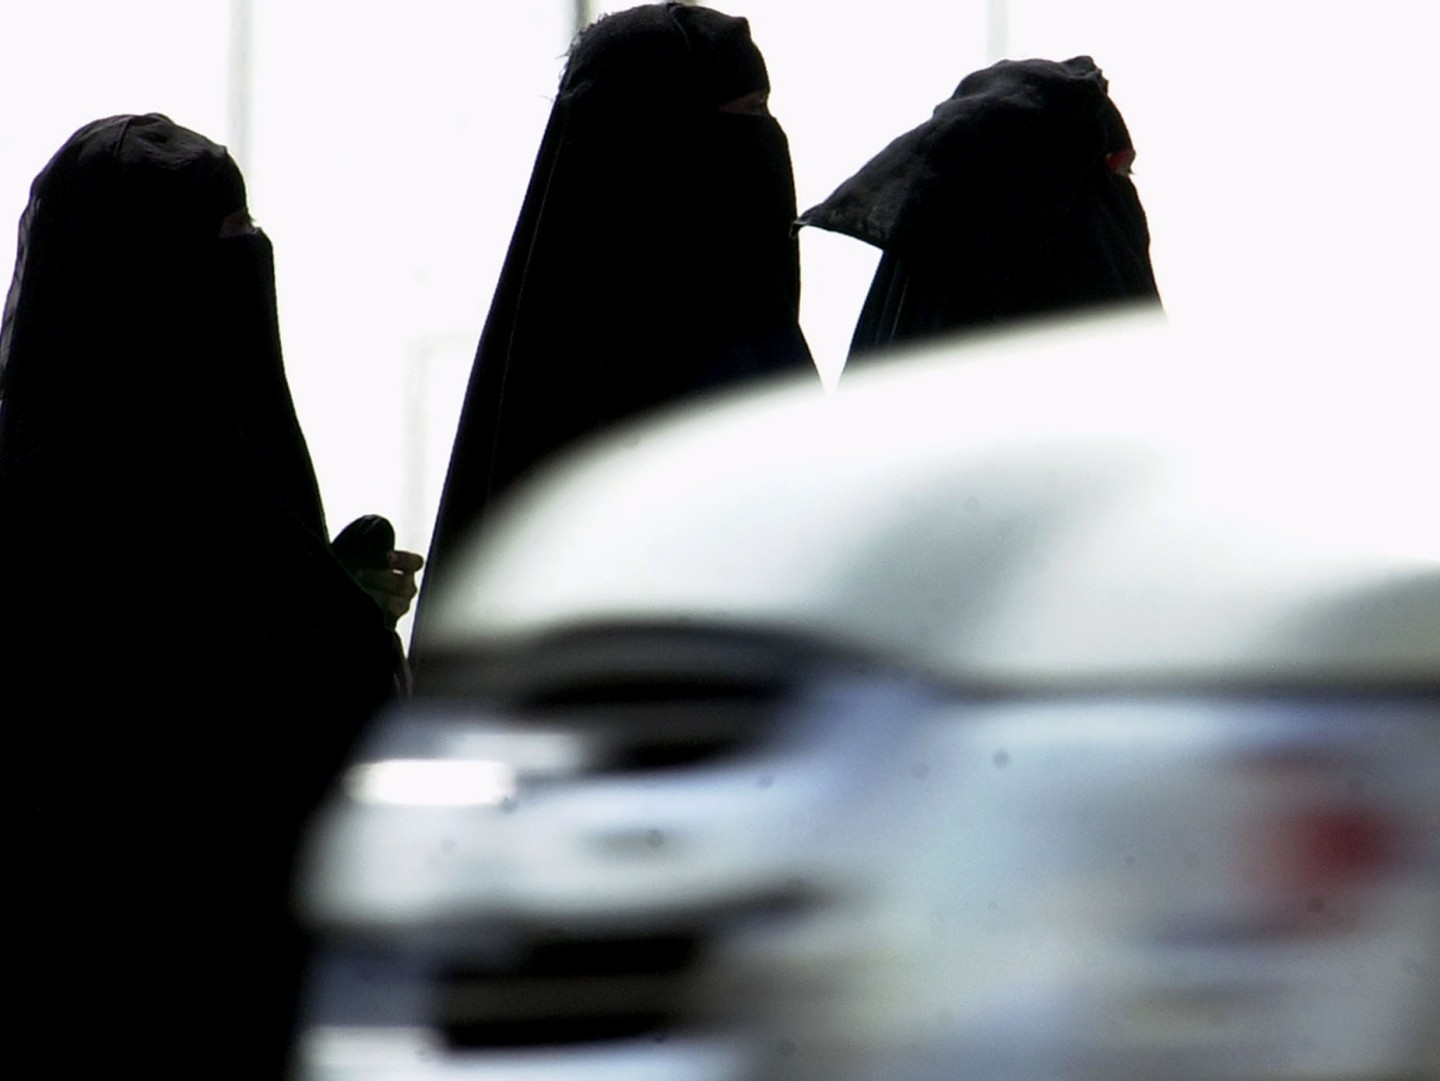 FILE - In this Wednesday, Nov. 15, 2006 file photo, Saudi women walk past cars in a Riyadh, Saudi Arabia, street. A Saudi lawyer and rights advocates say authorities will bring a Saudi activist to trial for defying the kingdom's female driving ban. (AP Photo/Hasan Jamali, File)